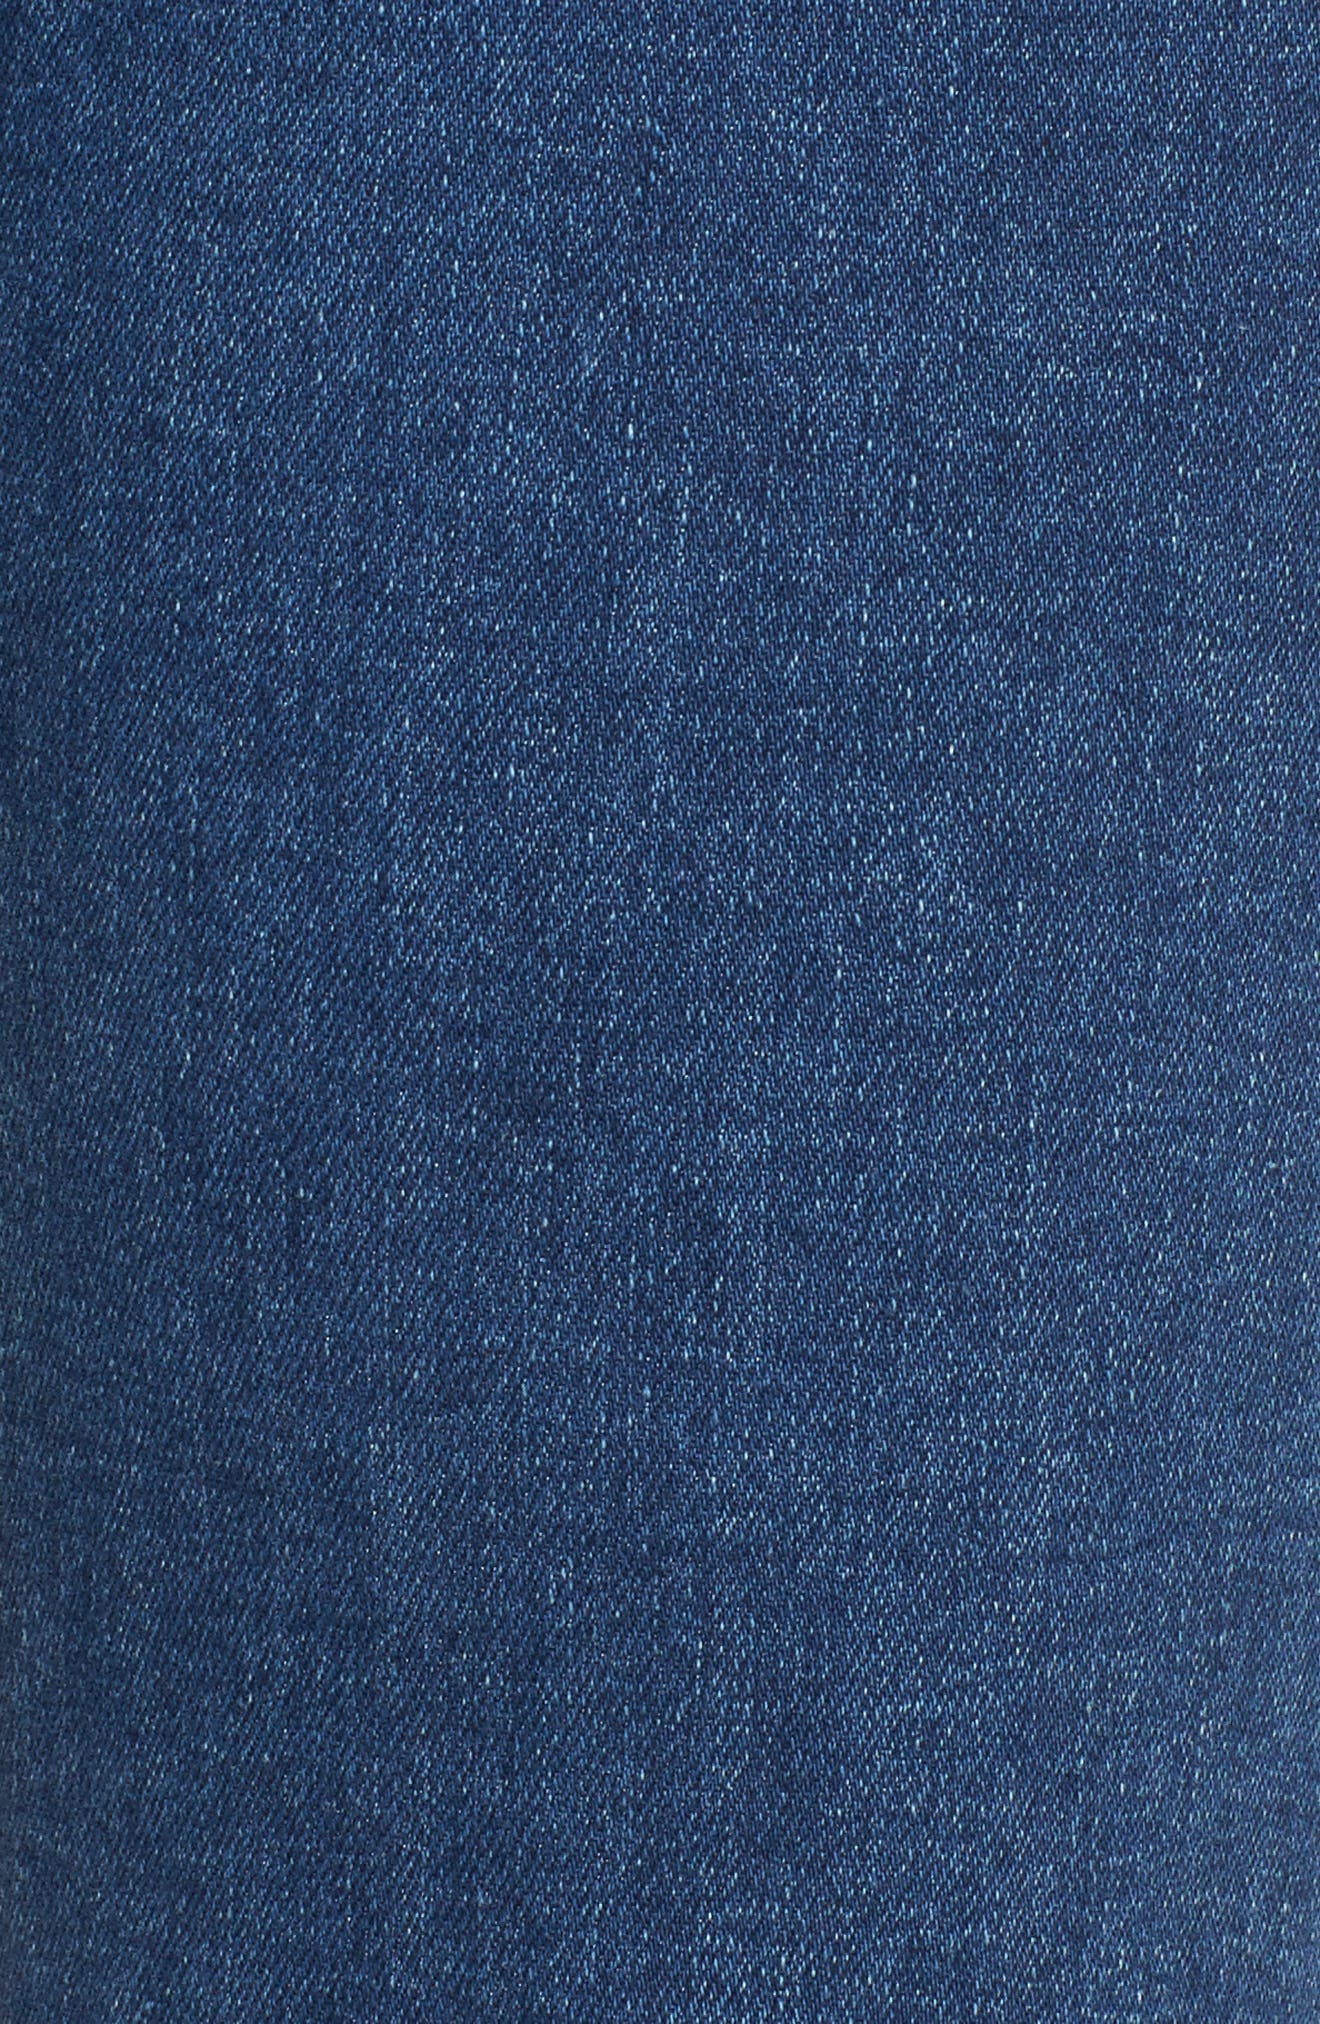 Pearl Embellished Crop Straight Leg Jeans,                             Alternate thumbnail 5, color,                             400